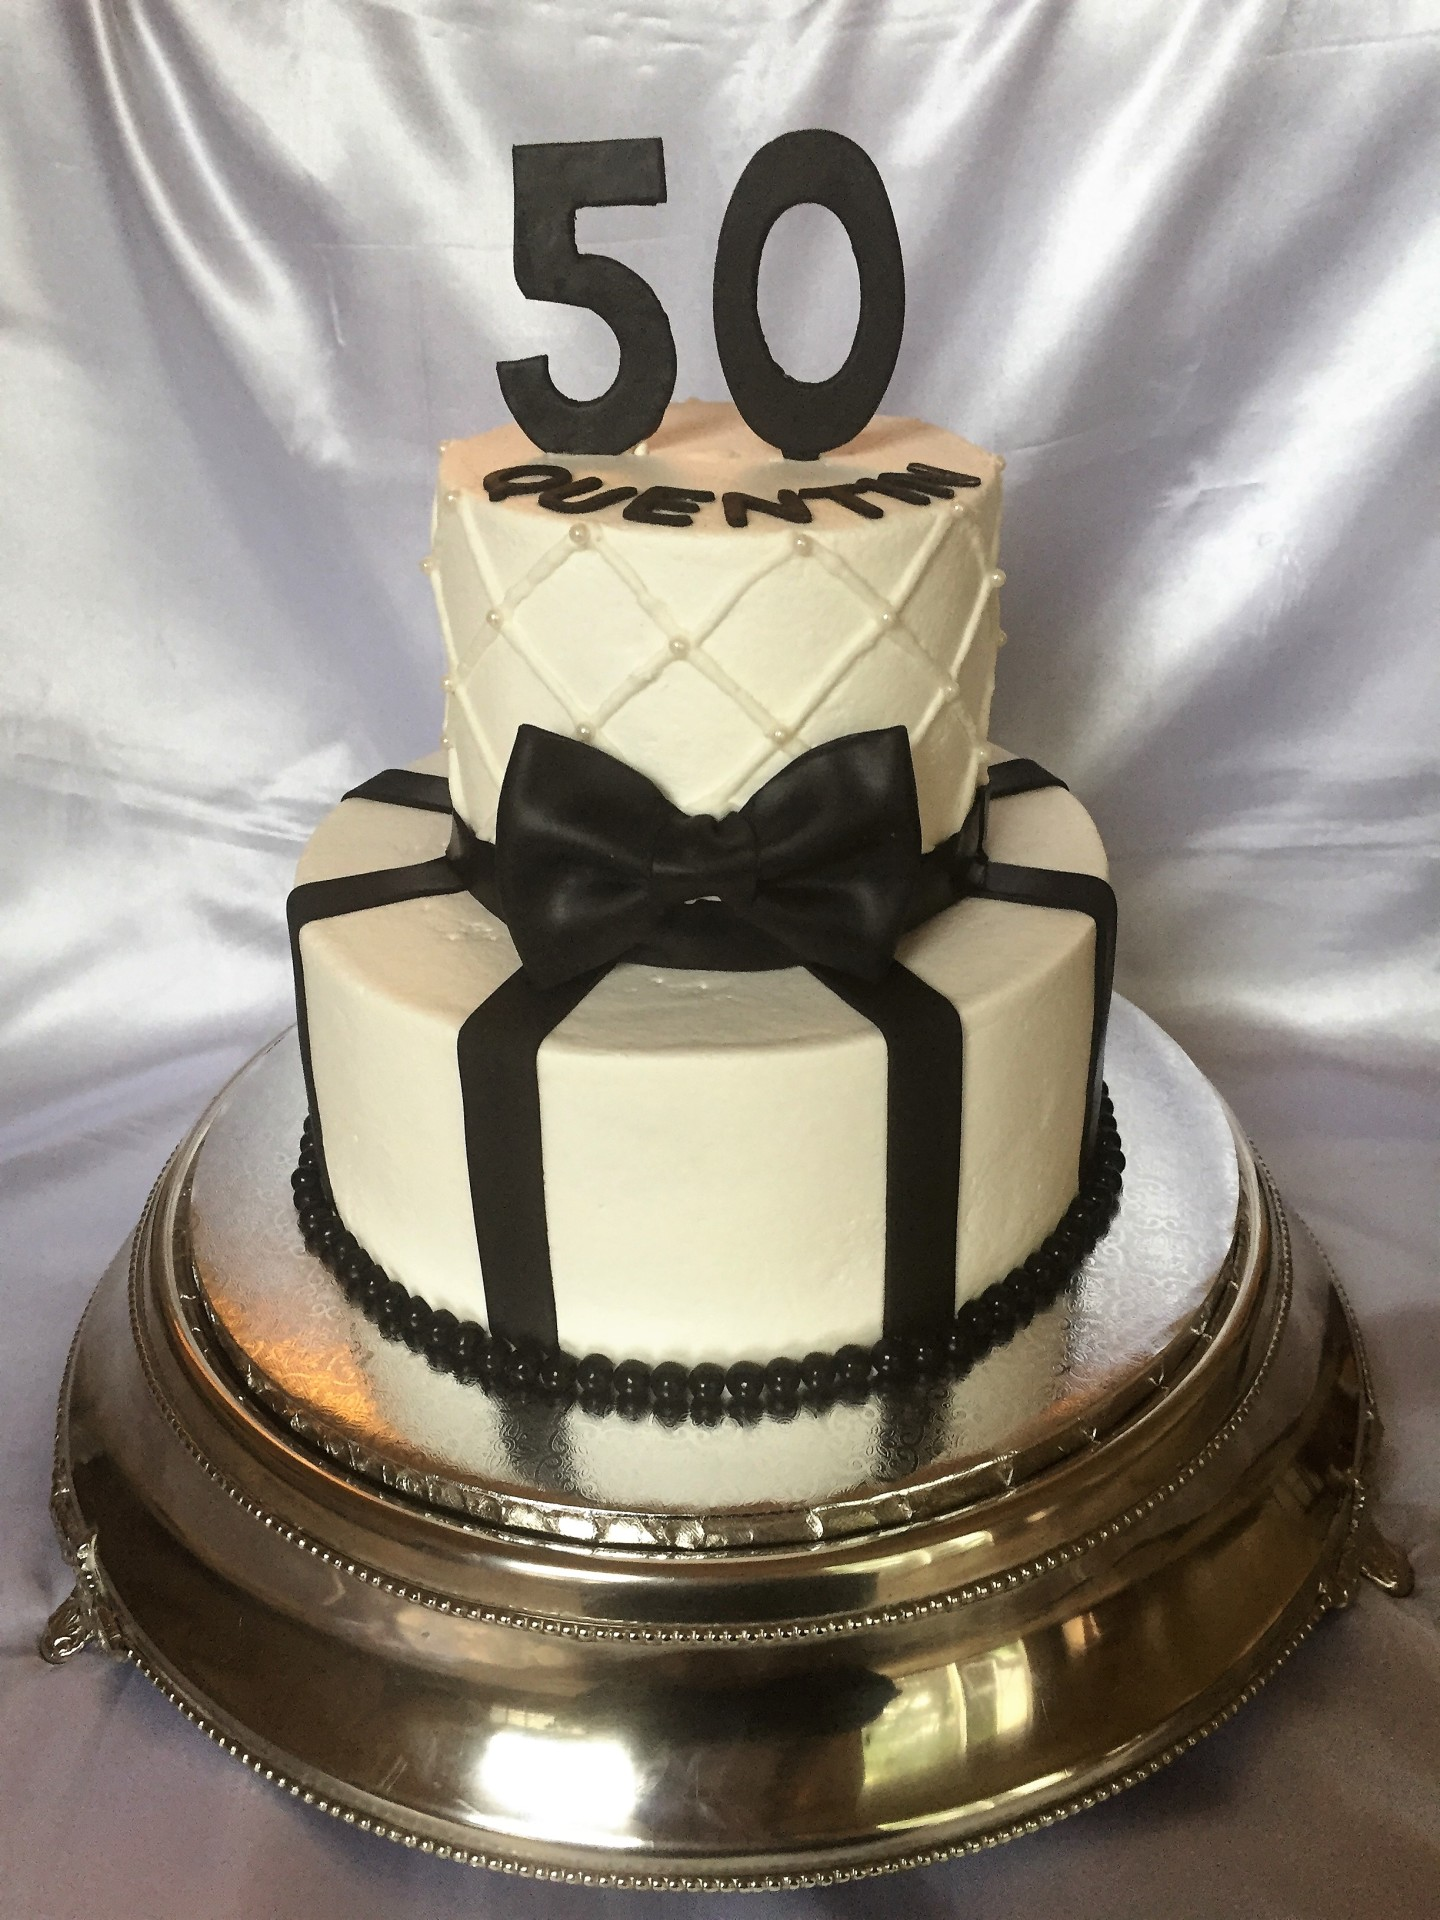 50th simple 2 tiered white